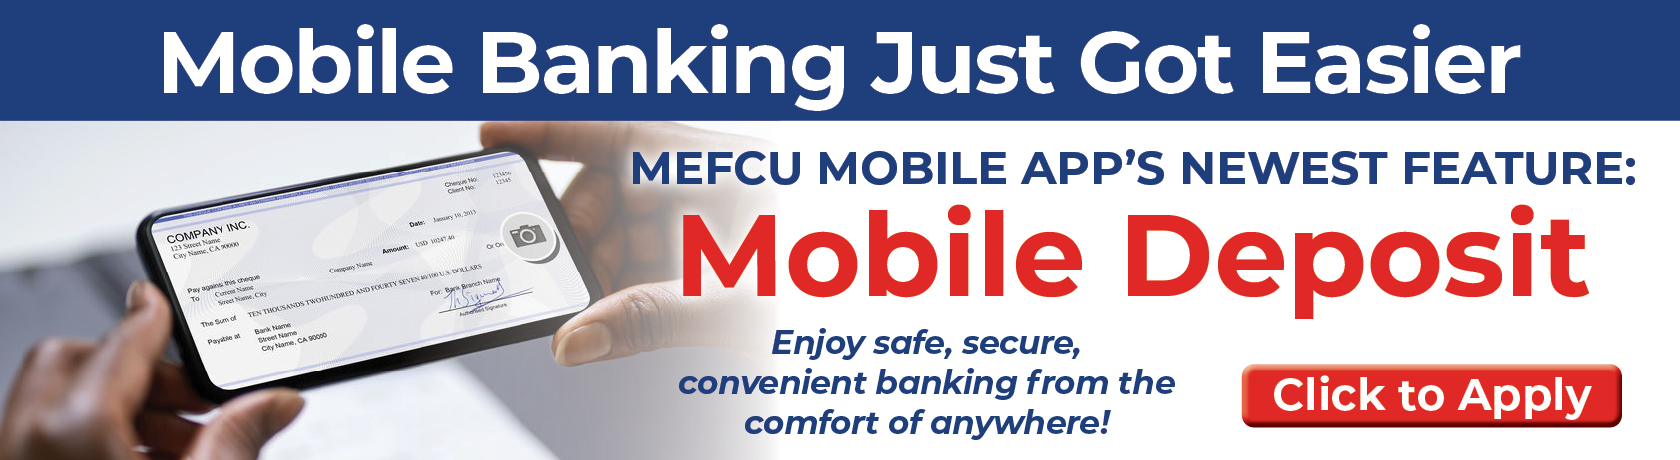 Mobile Banking Just Got Easier MEFCU MOBILE APP'S NEWEST FEATURE: Mobile Deposit Enjoy safe, secure, convenient banking from the comfort of everywhere!